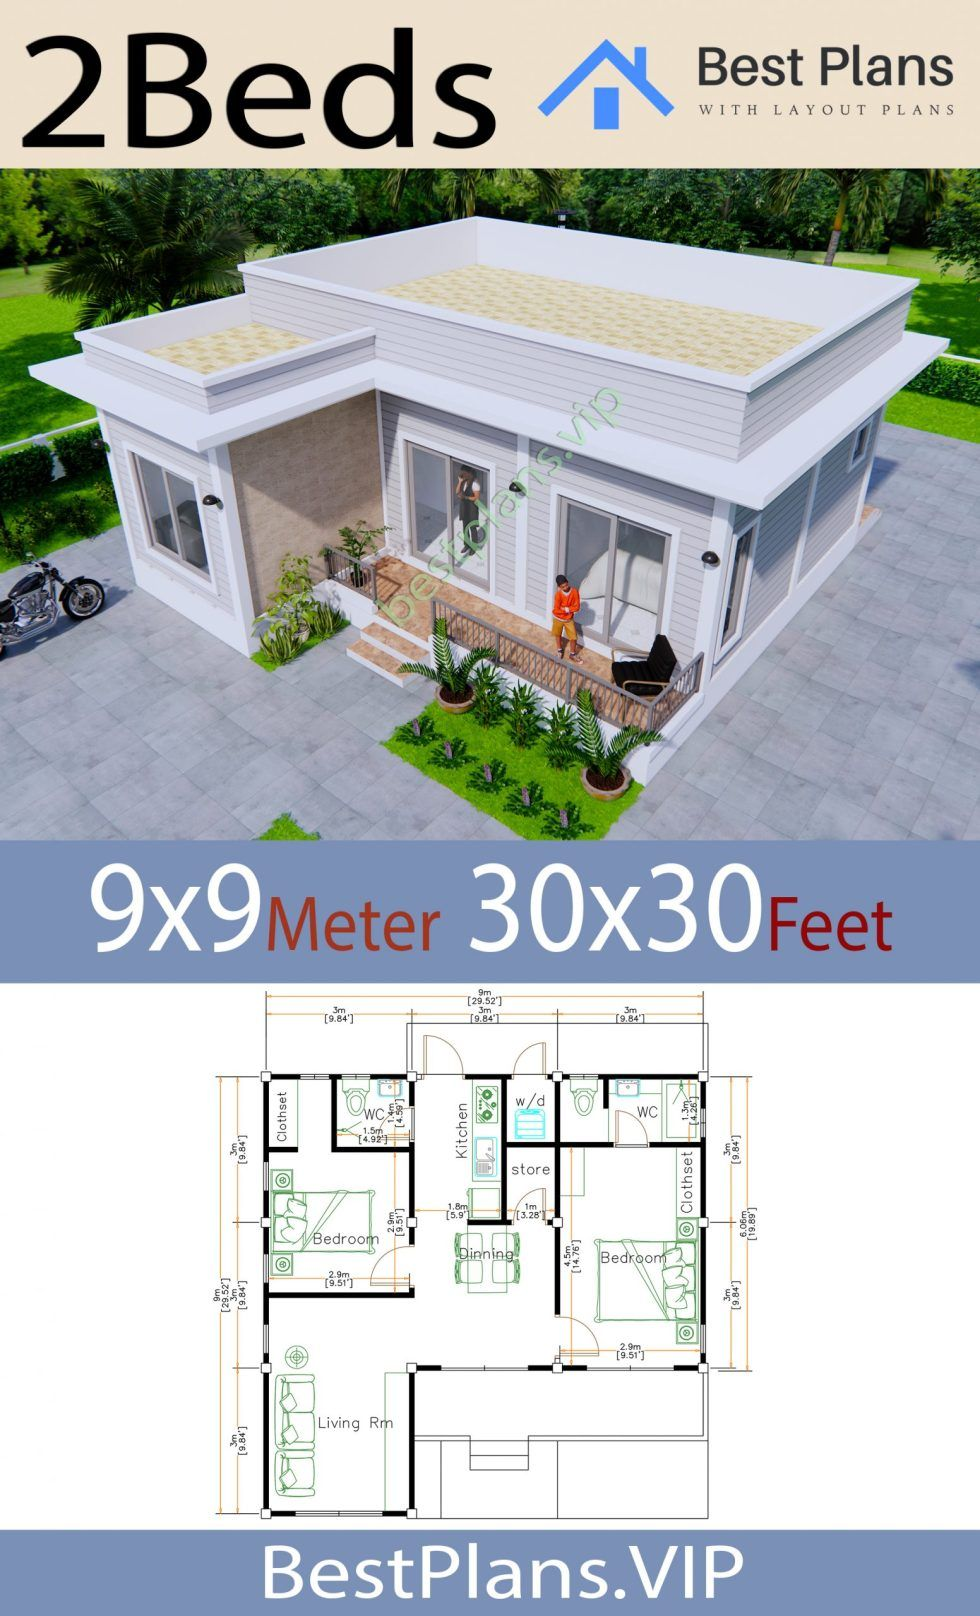 House Plans 9x9 Meters 30x30 Feet 2 Bedrooms Terrace Roof Best Plans Vip In 2020 House Plans Hip Roof Tiny House Design